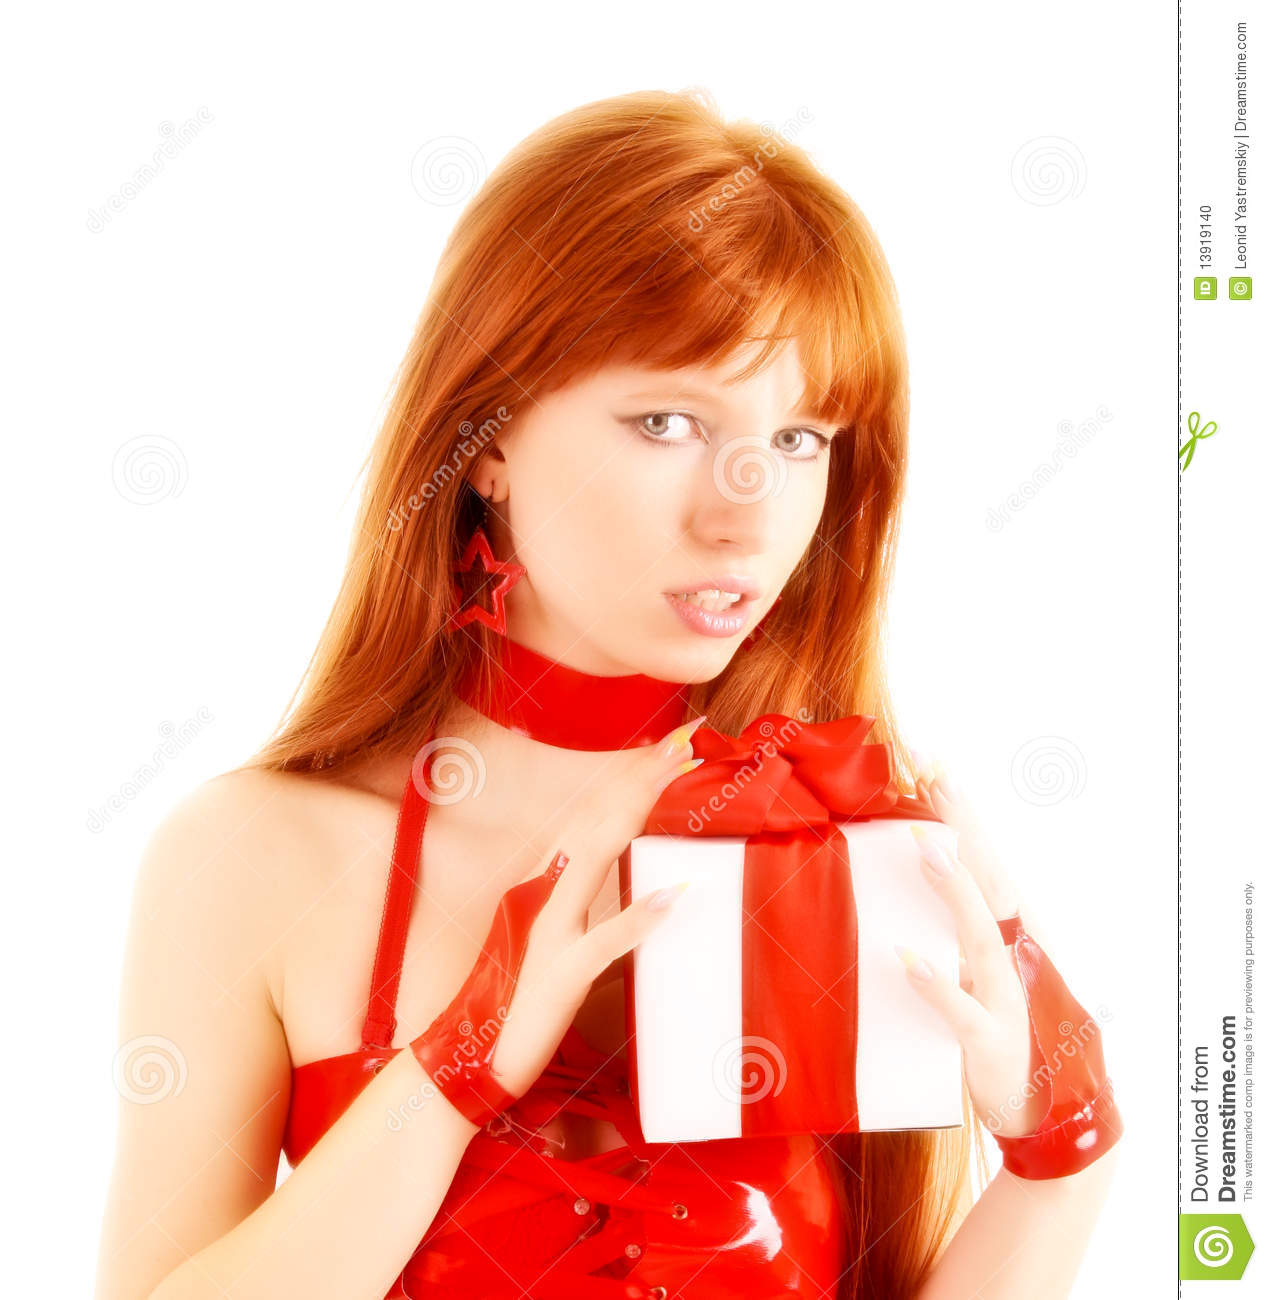 Best present Hairy redhed women